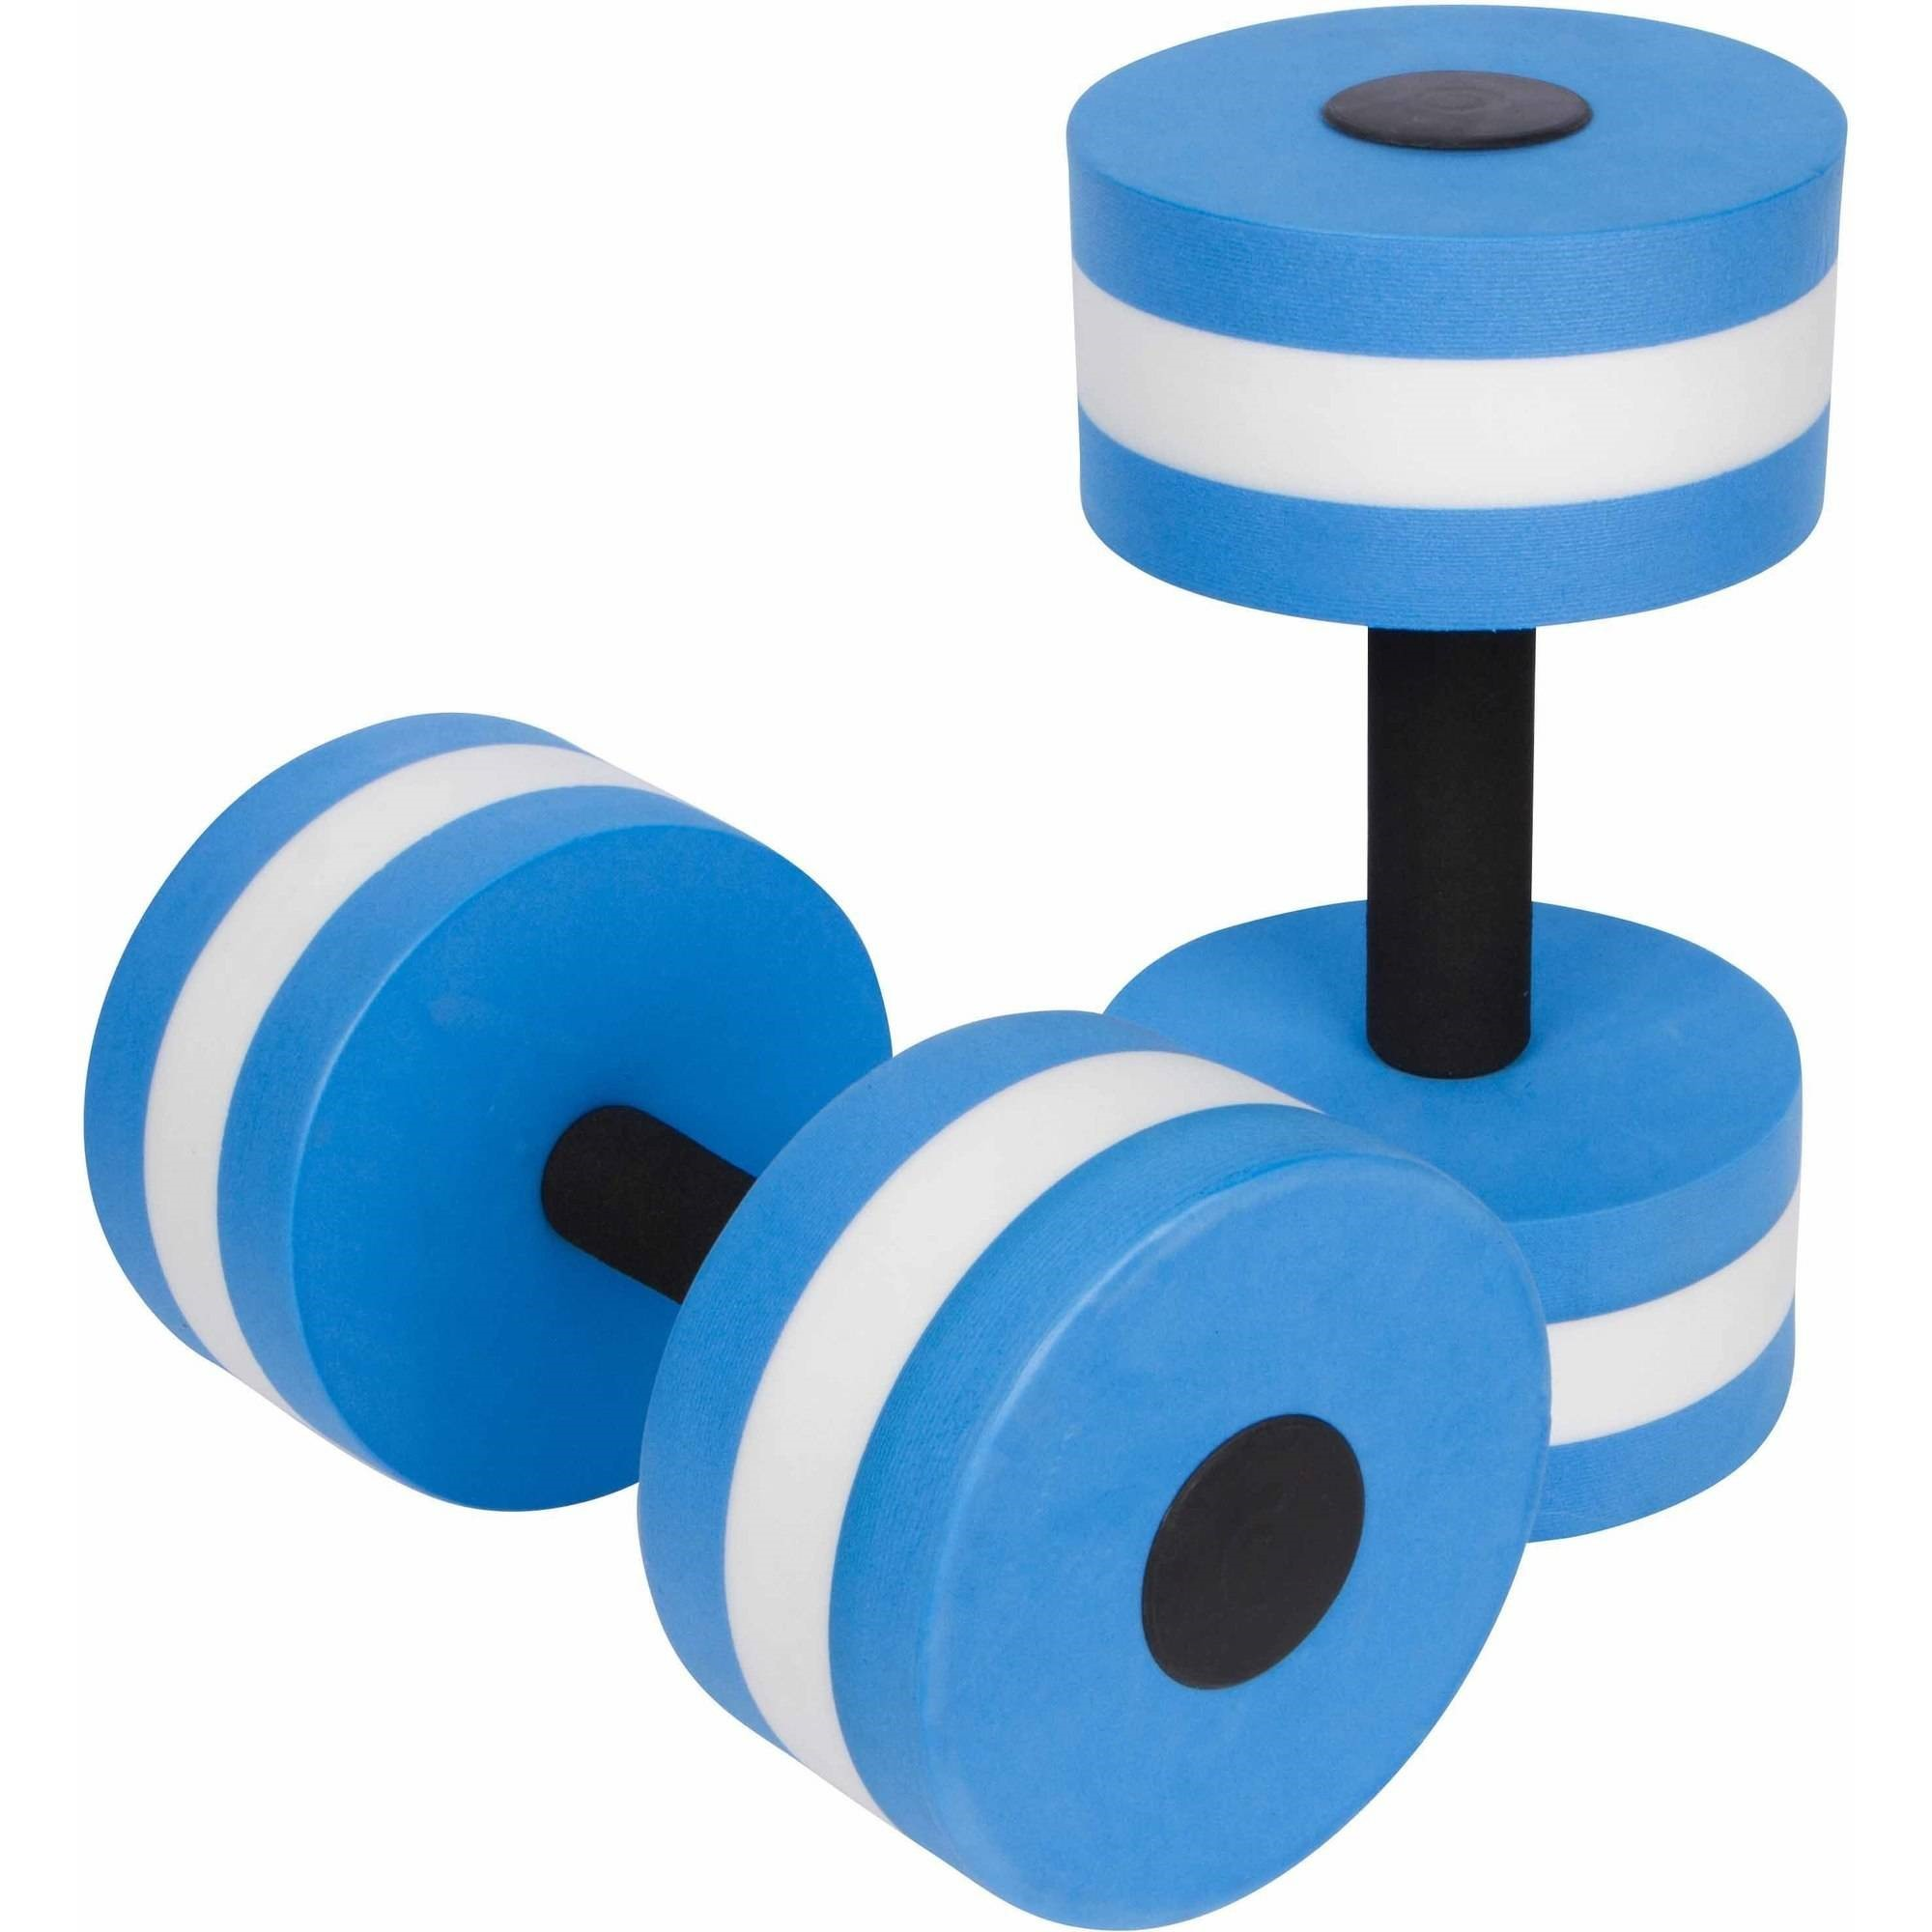 Trademark Innovations Aquatic Exercise Dumbbells for Water Aerobics, Blue